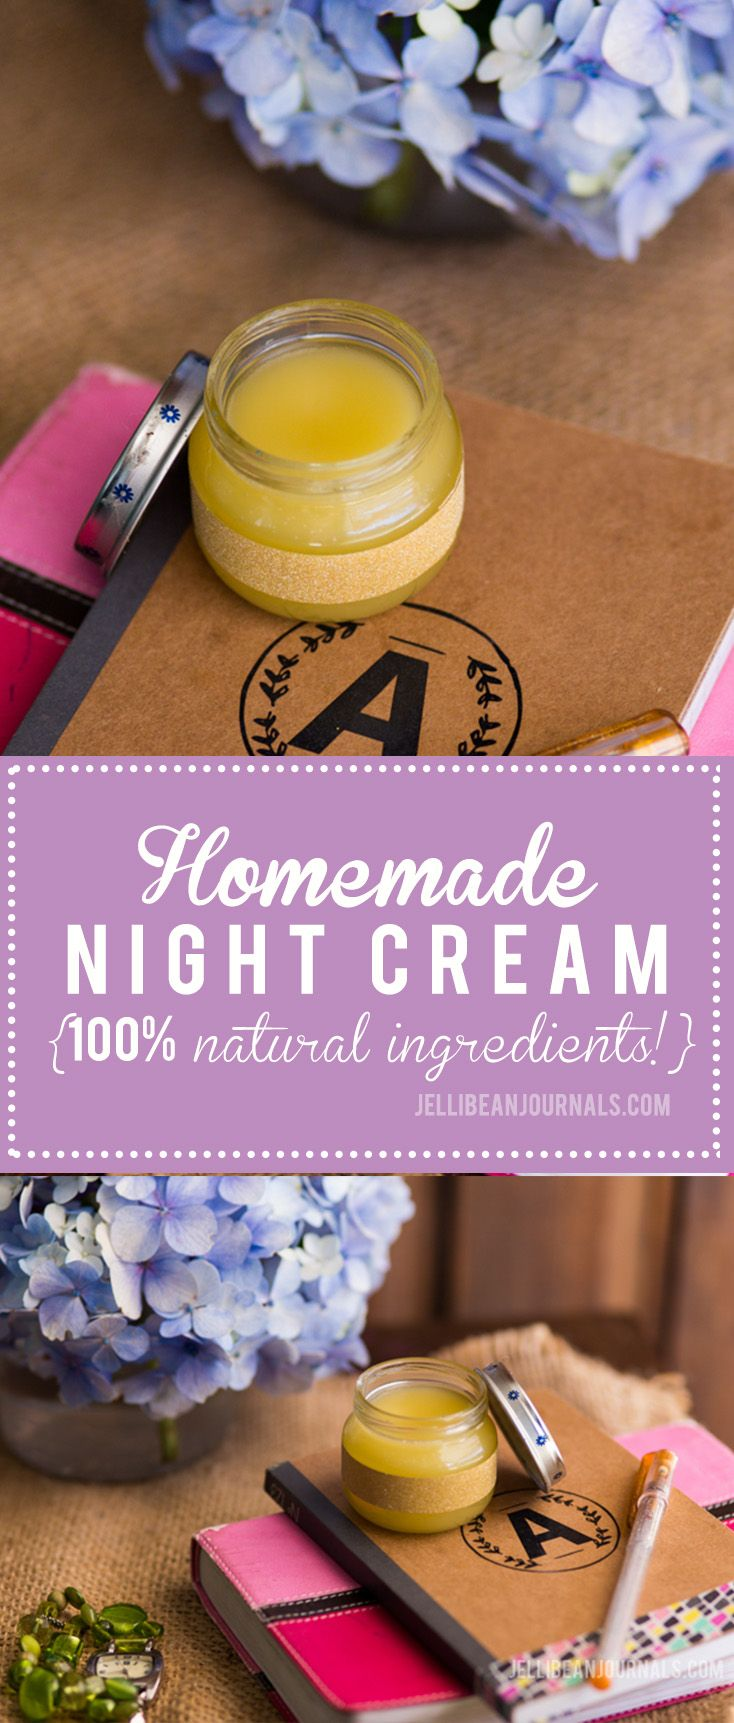 Homemade Olive Oil Night Cream Jellibean Journals